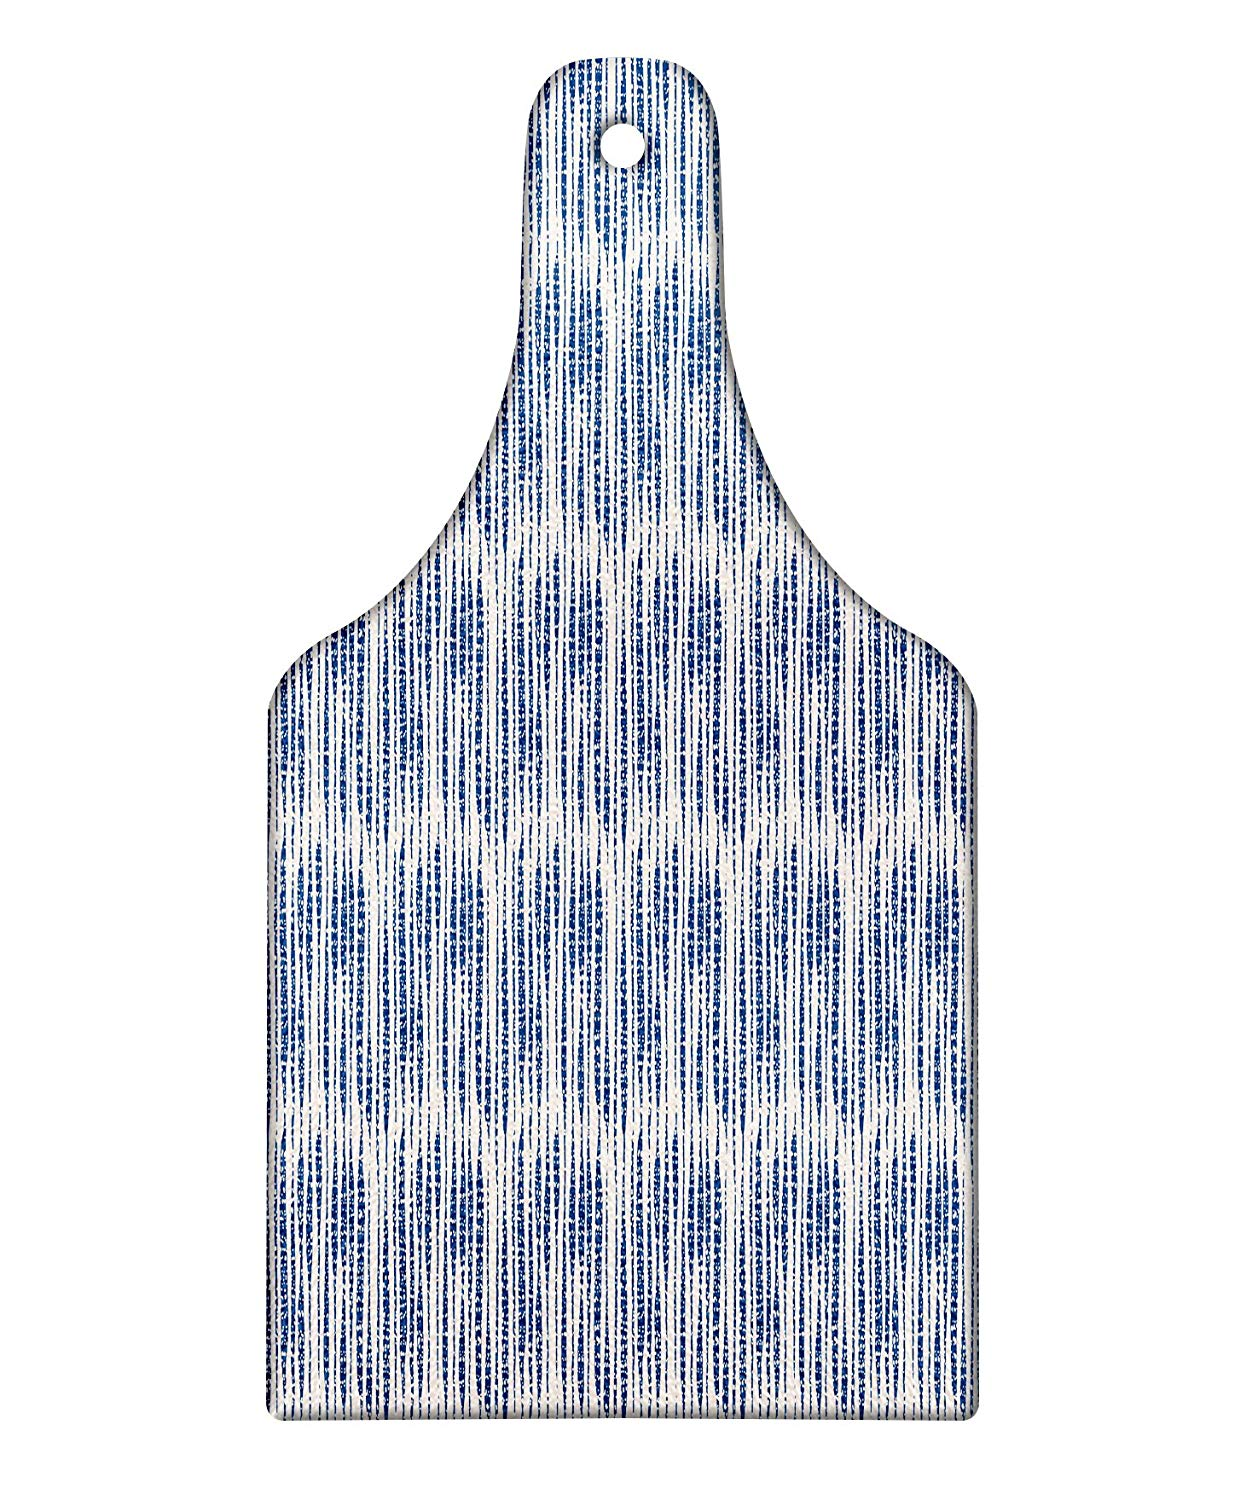 Lunarable Japanese Cutting Board, Oriental Composition of Stripes Watercolor Style Paint Dripping Pattern, Decorative Tempered Glass Cutting and Serving Board, Wine Bottle Shape, Night Blue Eggshell